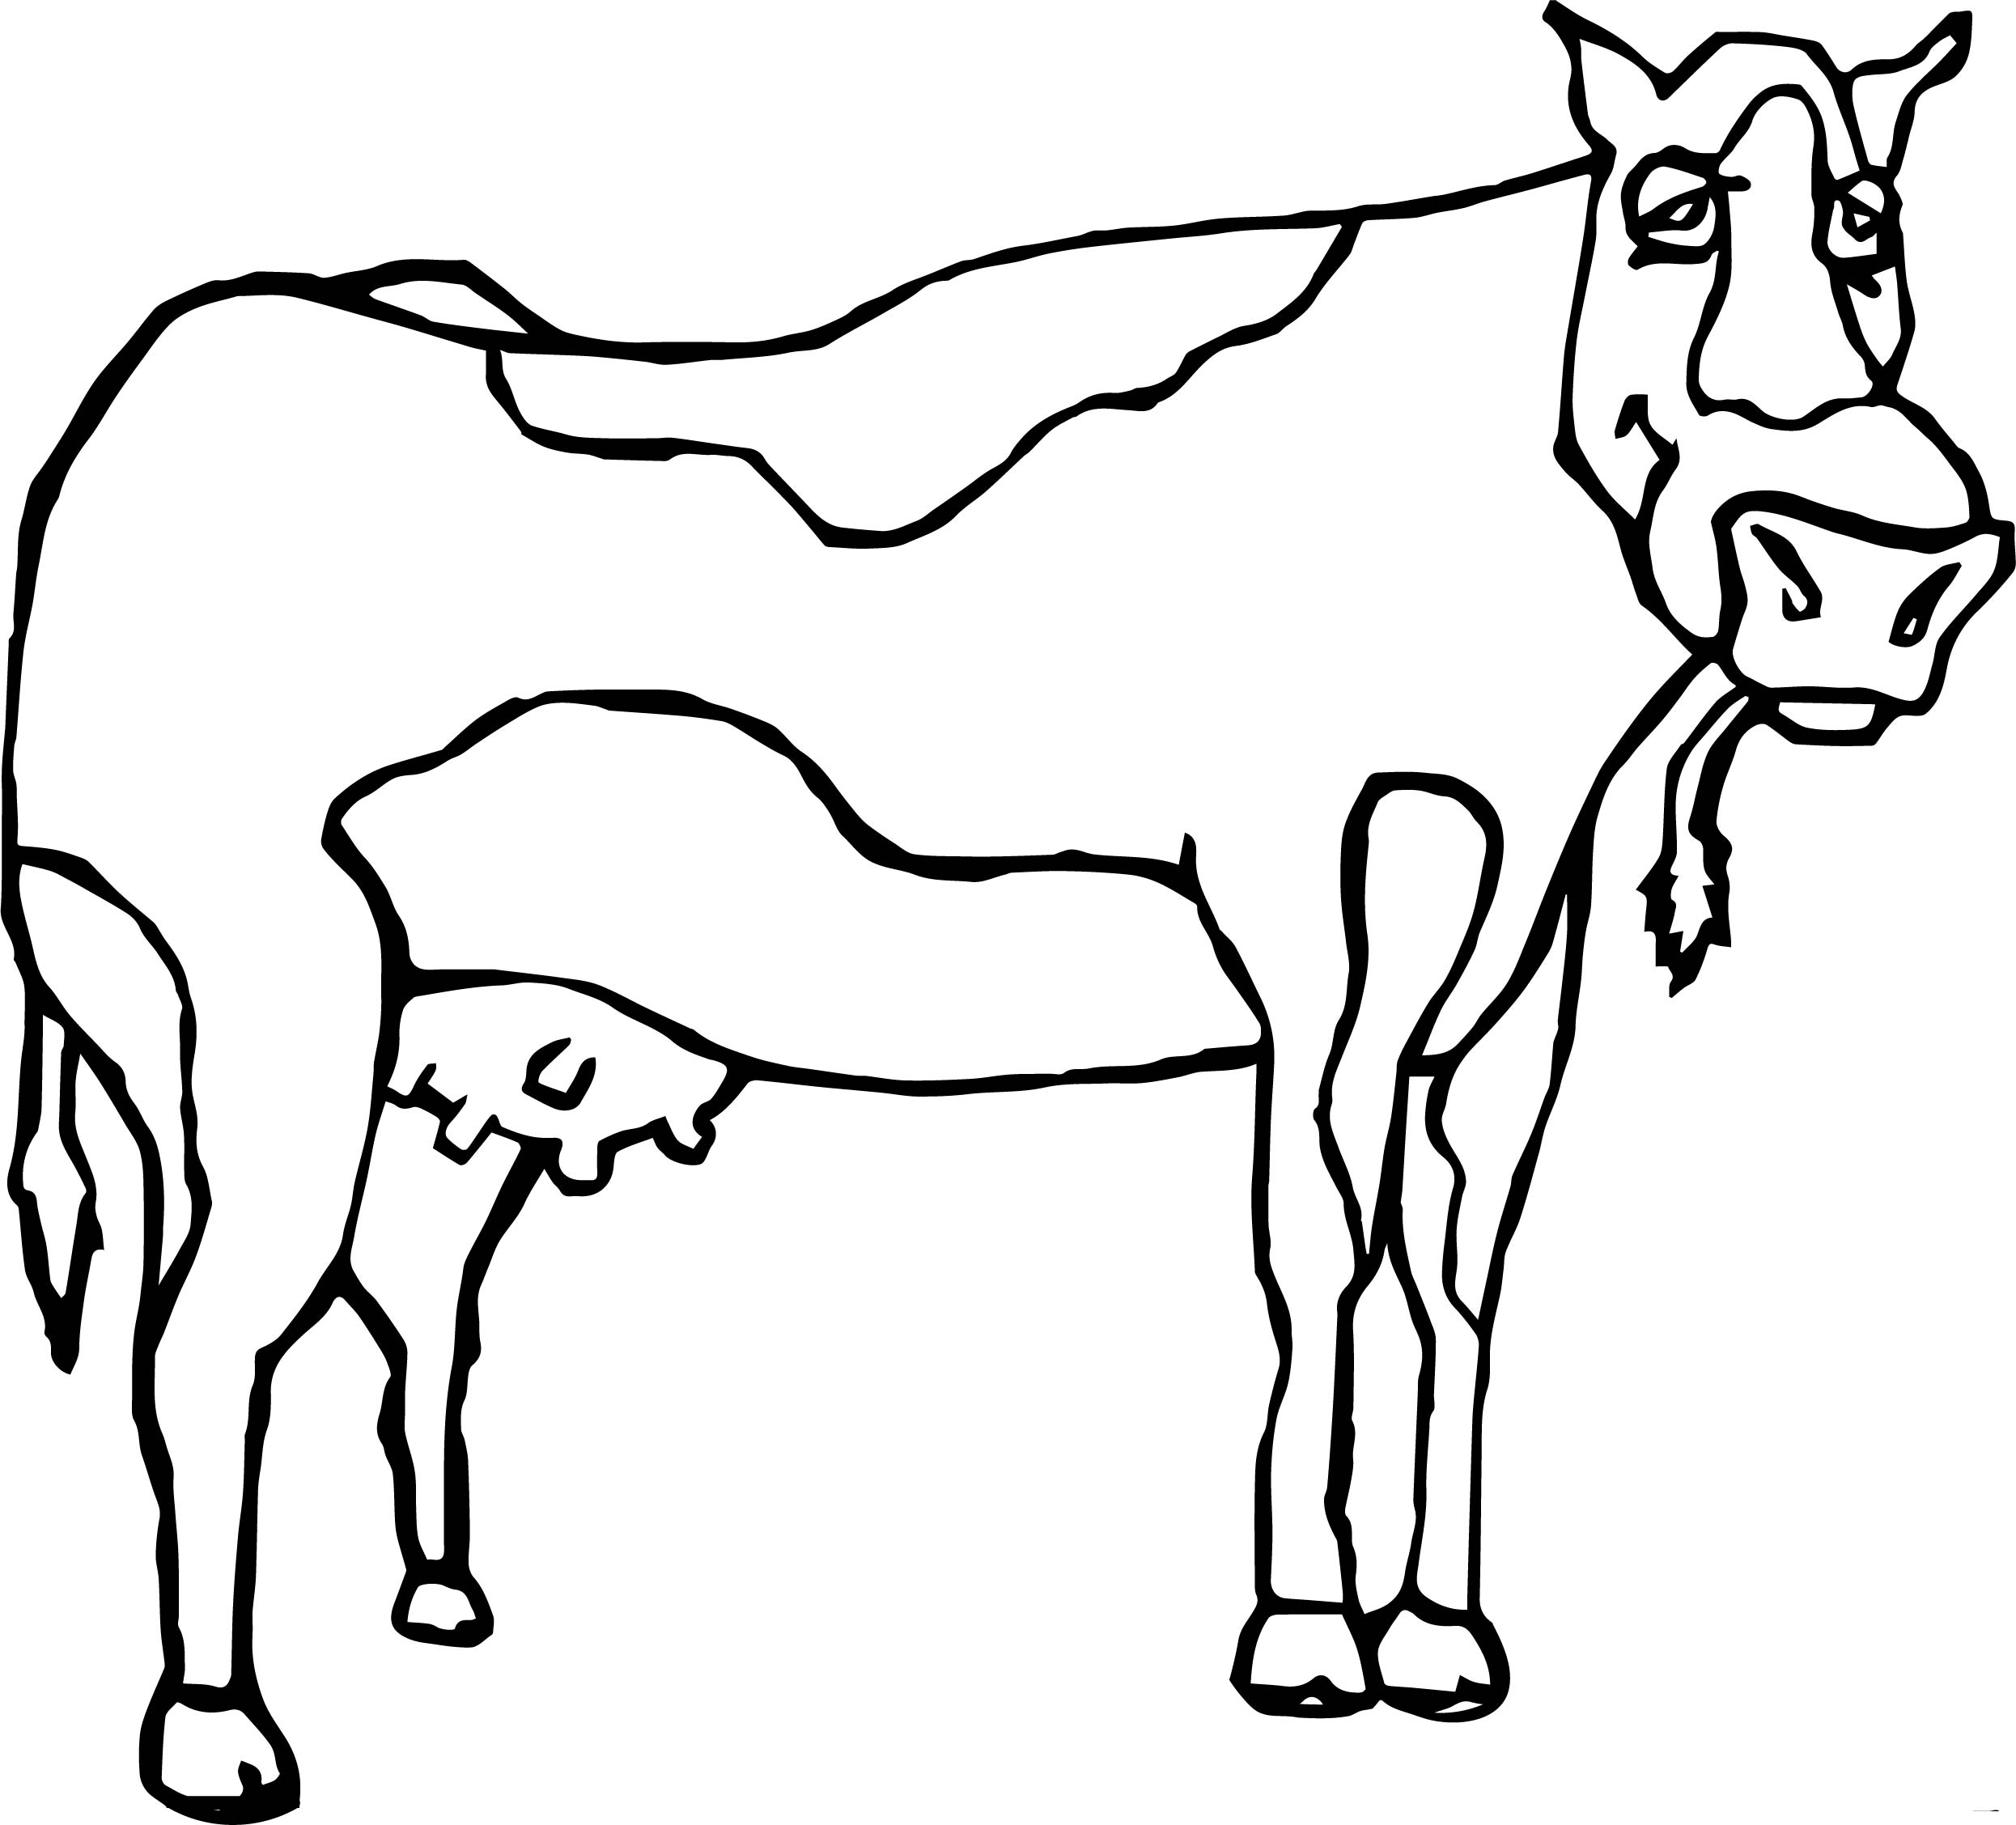 85+ [ Typical Farm Animals Cattle Coloring Pages ] - Farm ...